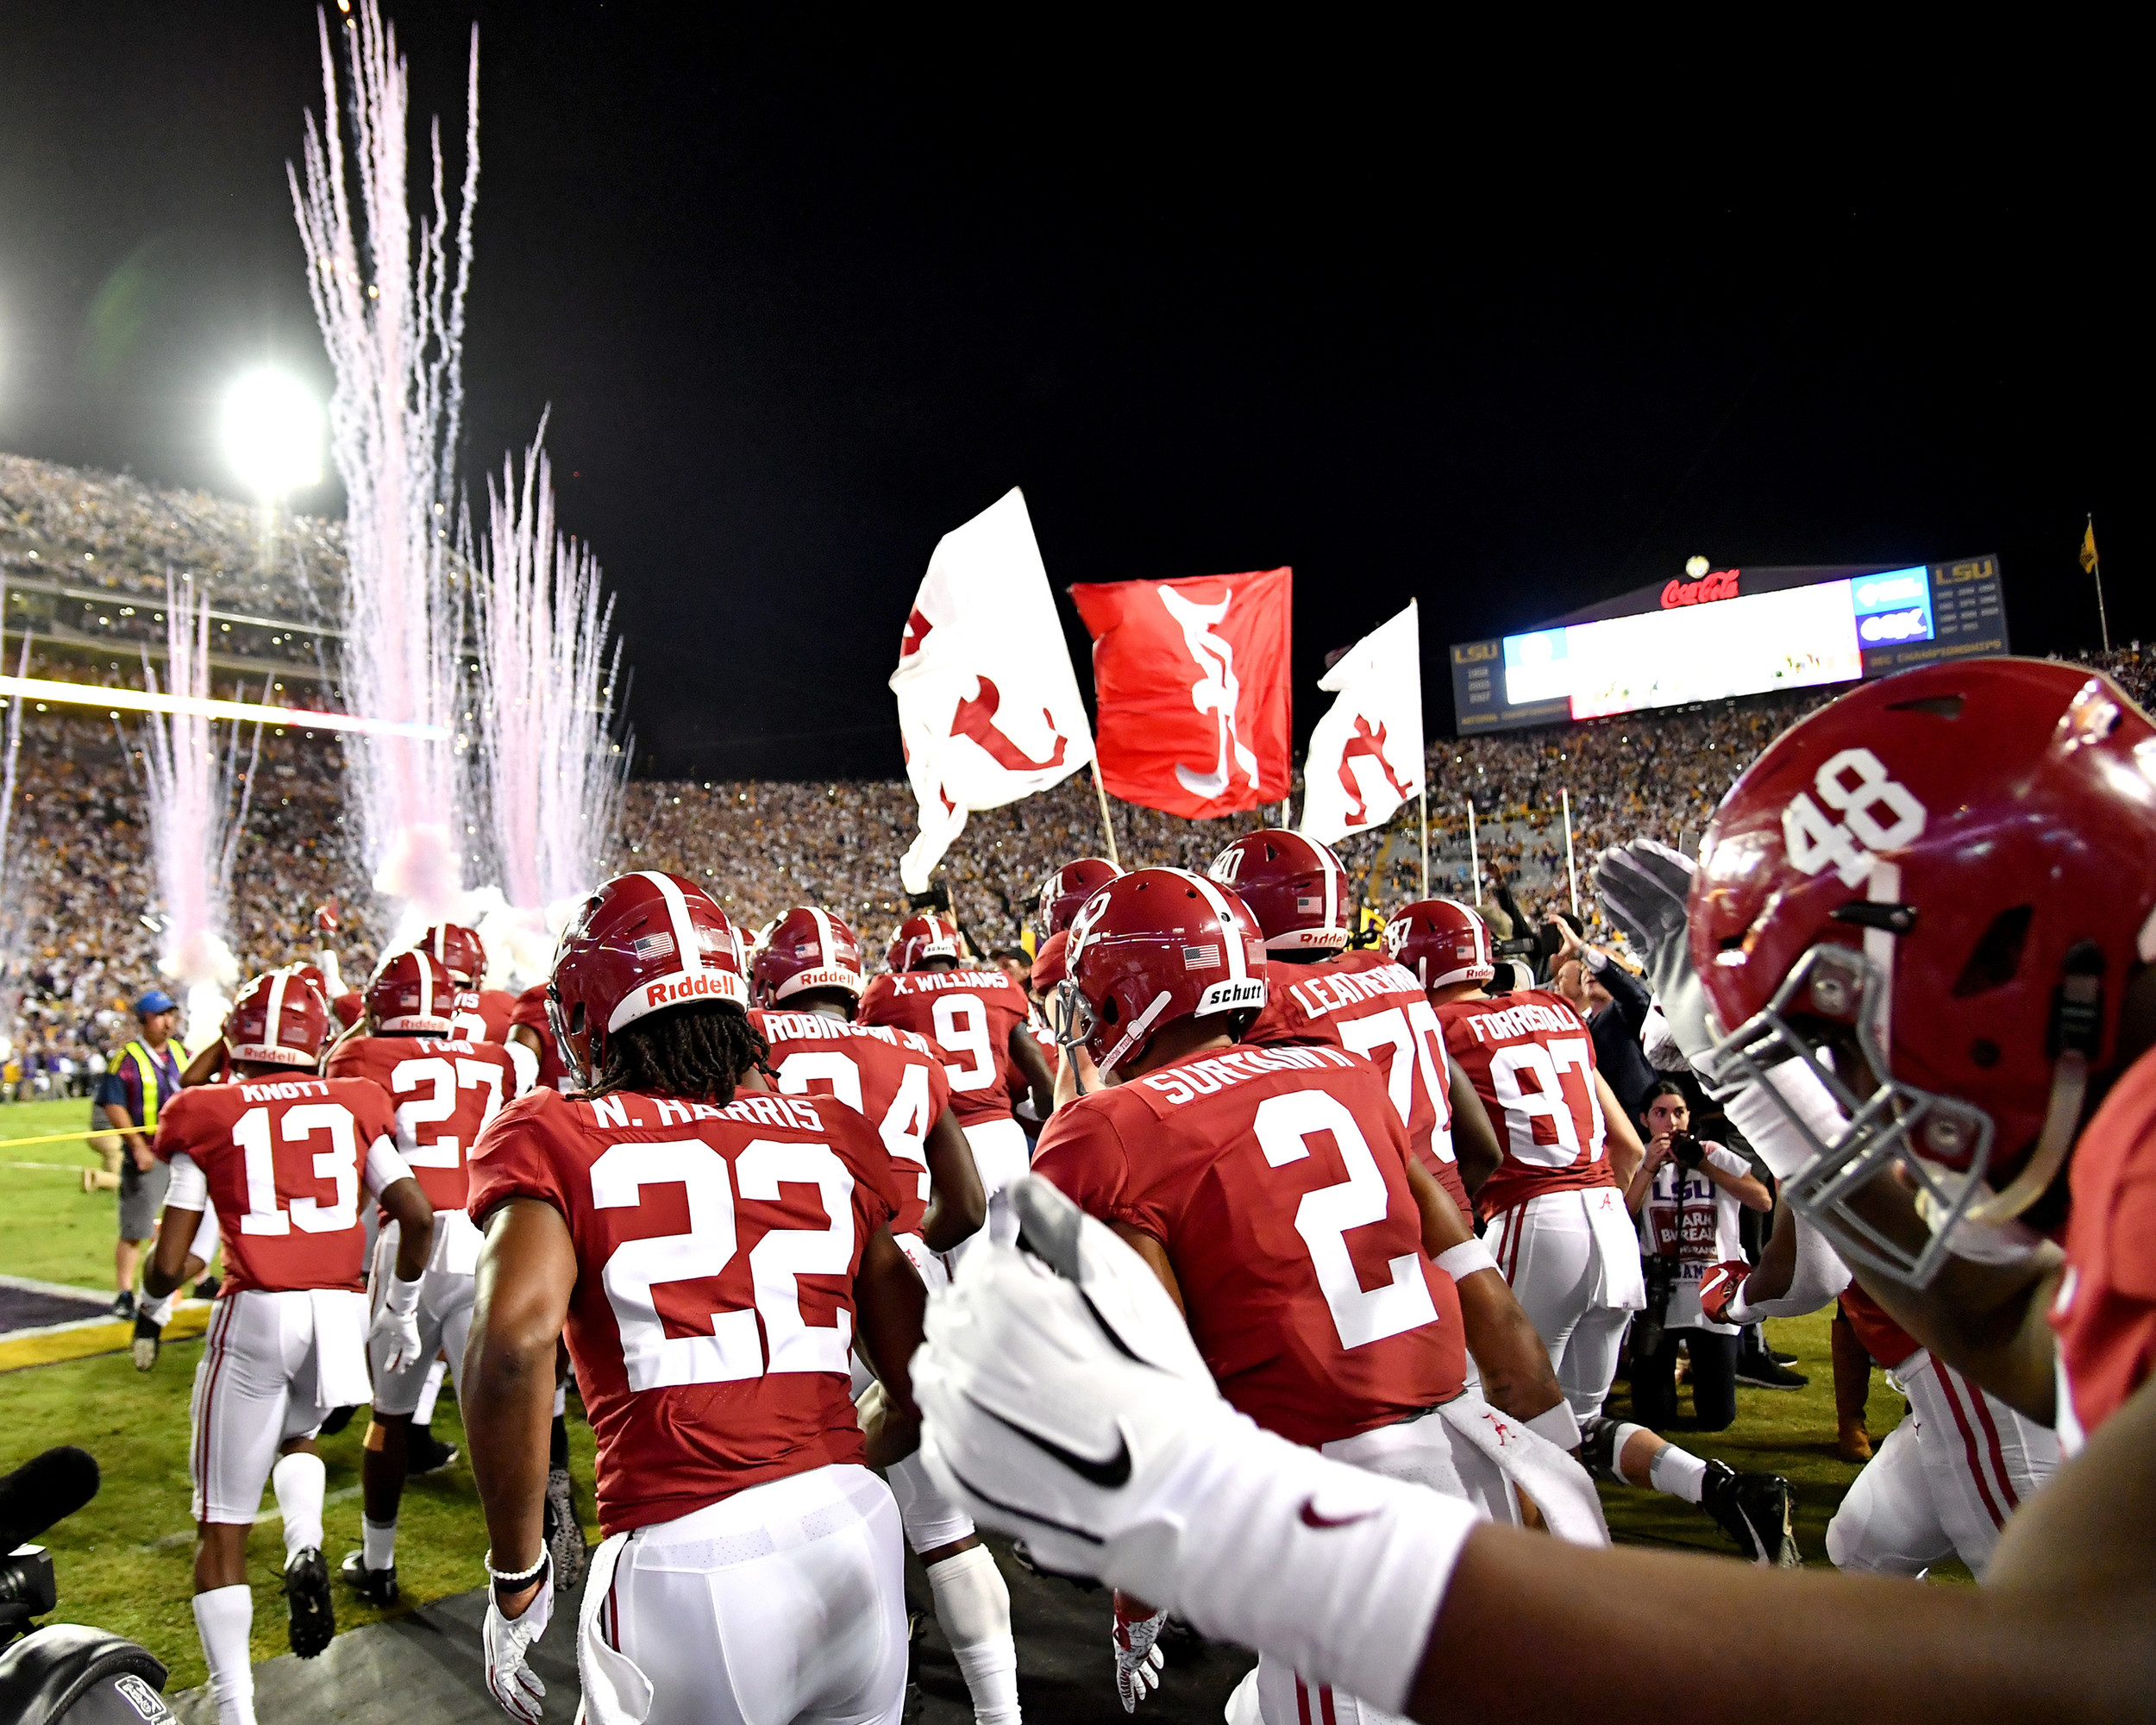 Players take the field prior to the first half of an NCAA football game between the Alabama Crimson Tide and the LSU Tigers Saturday, November 3, 2018, at Tiger Stadium in Baton Rouge, La. Alabama wins 29-0. (Photo by Lee Walls)